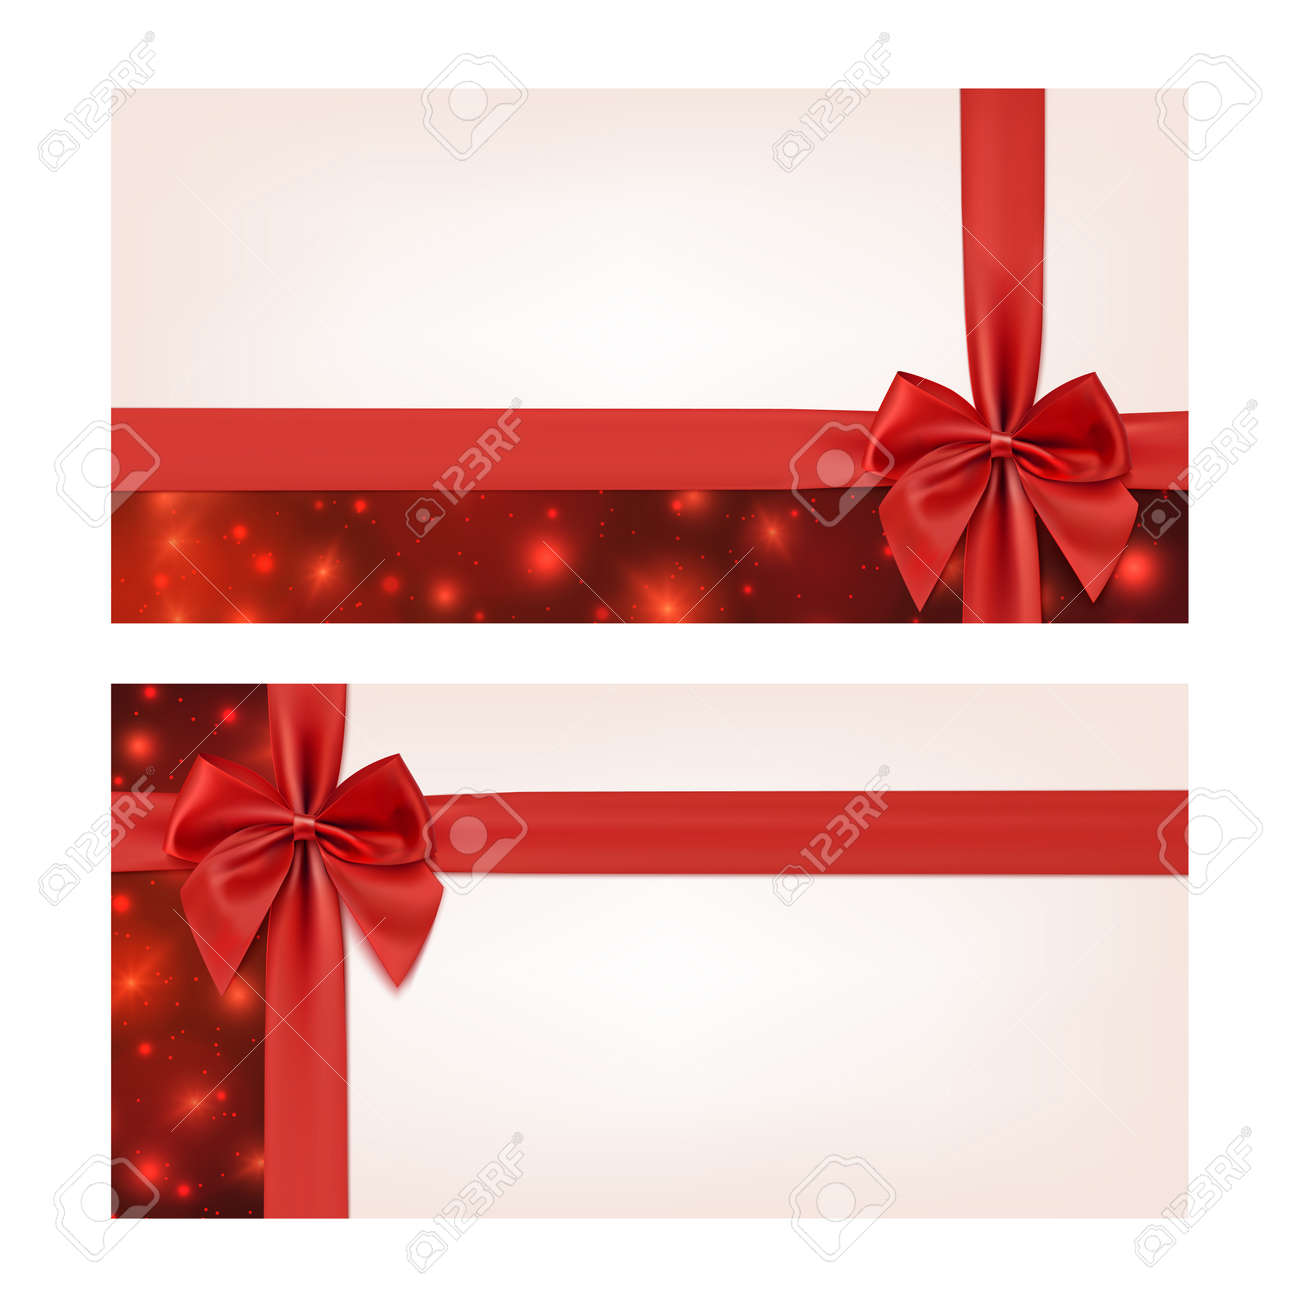 Gift voucher template with red ribbon and a bow vector gift voucher template with red ribbon and a bow vector illustration stock vector 36895698 negle Image collections